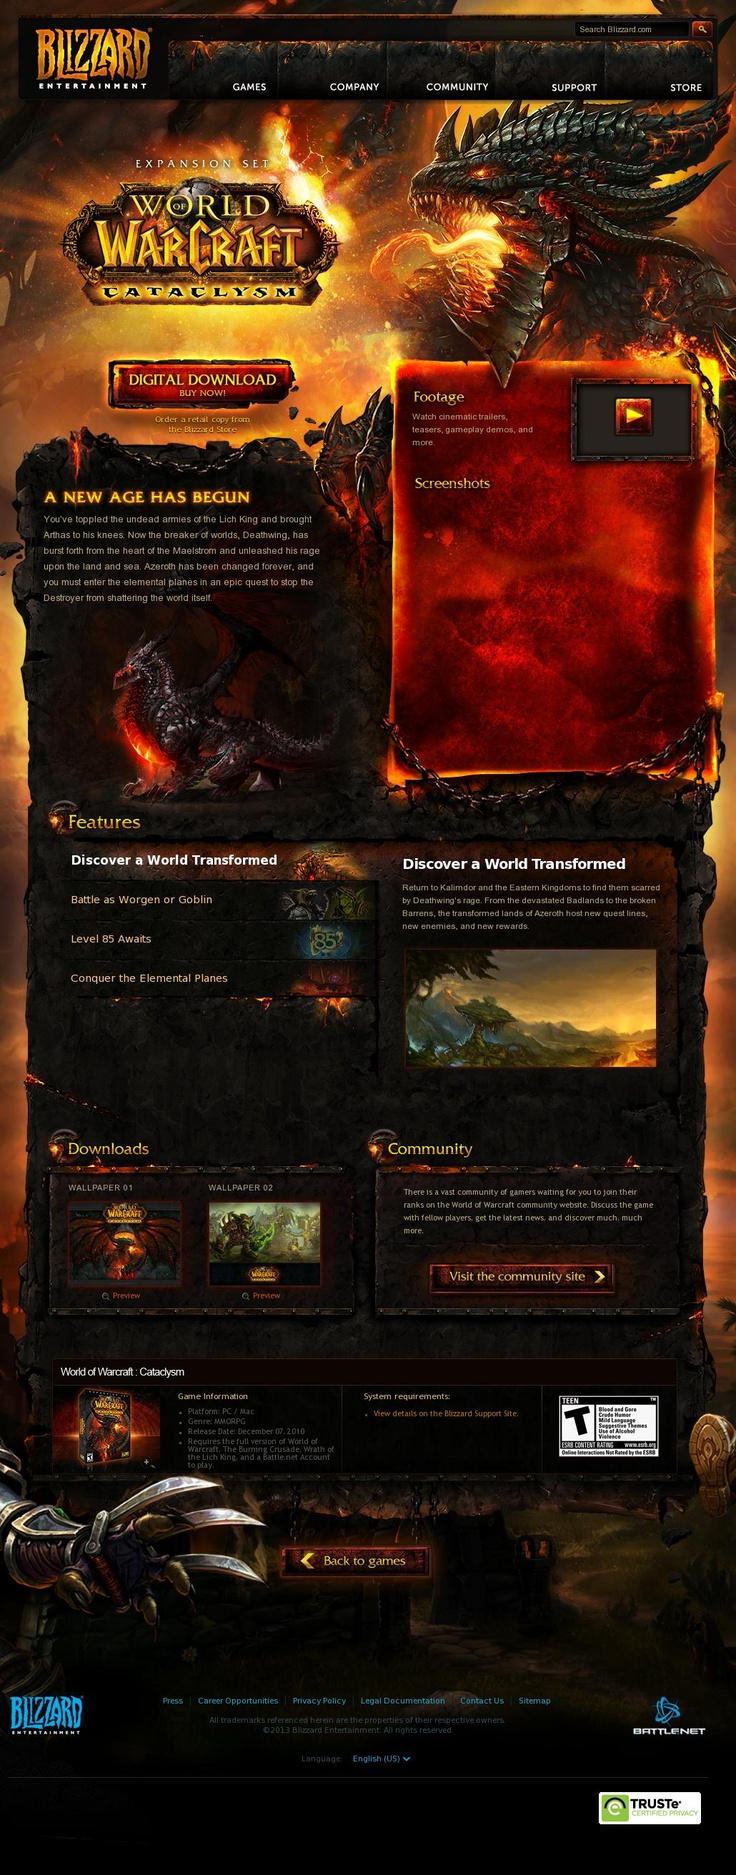 World of Warcraft: Cataclysm  http://us.blizzard.com/en-us/games/cataclysm/